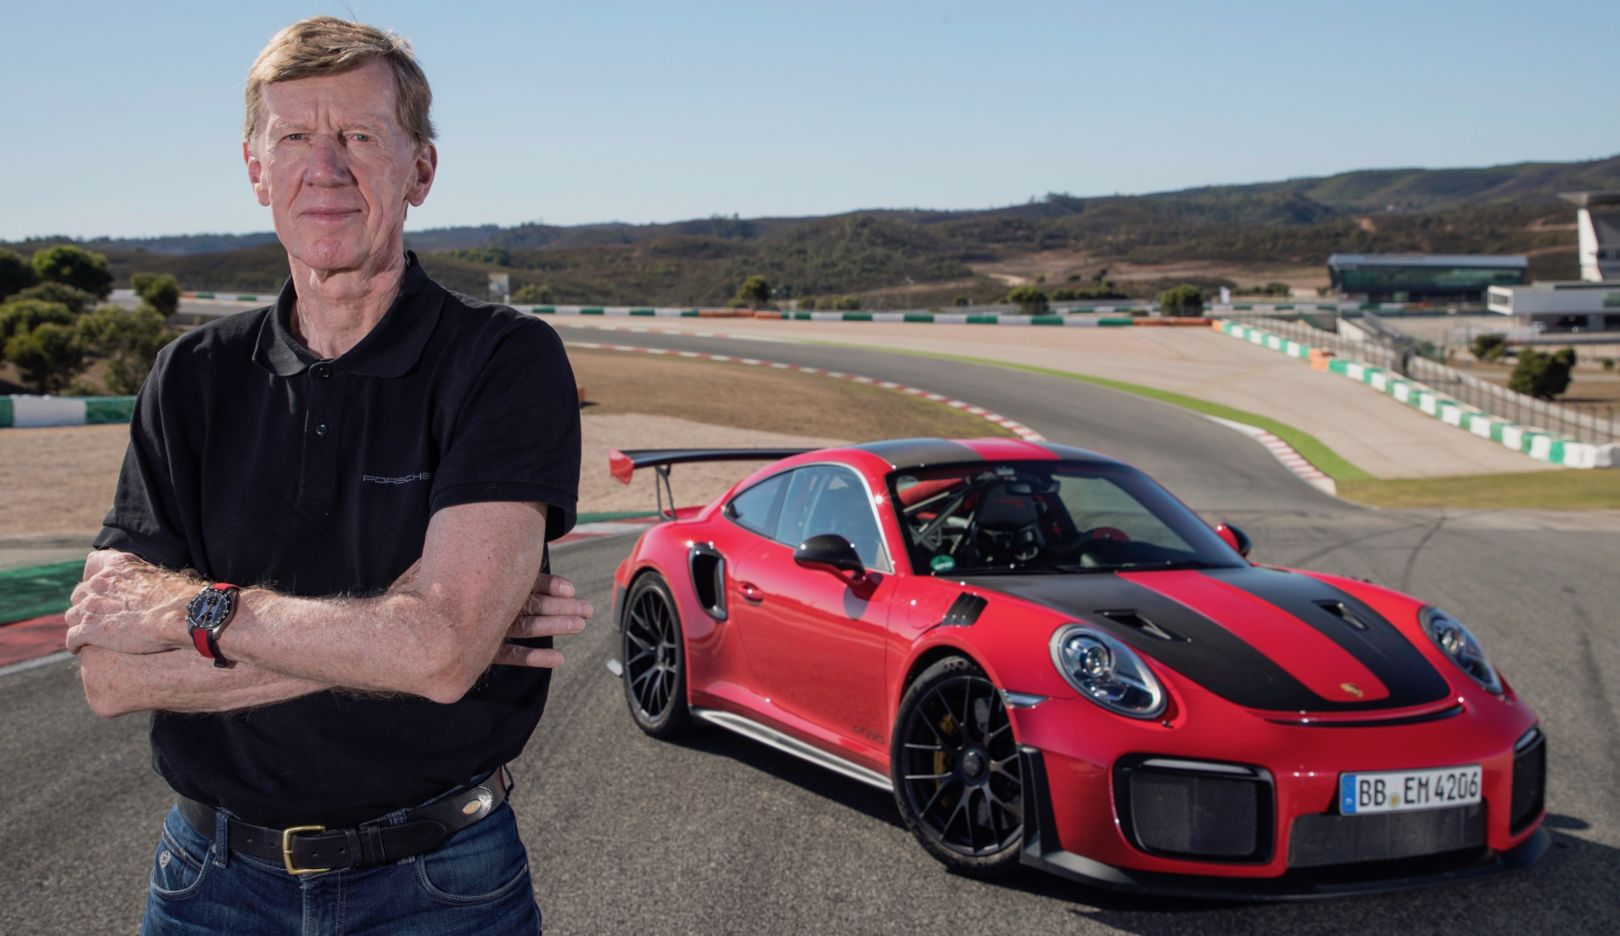 Walter Röhrl, 911 GT2 RS press test, Portimão, Portugal, 2017, Porsche AG